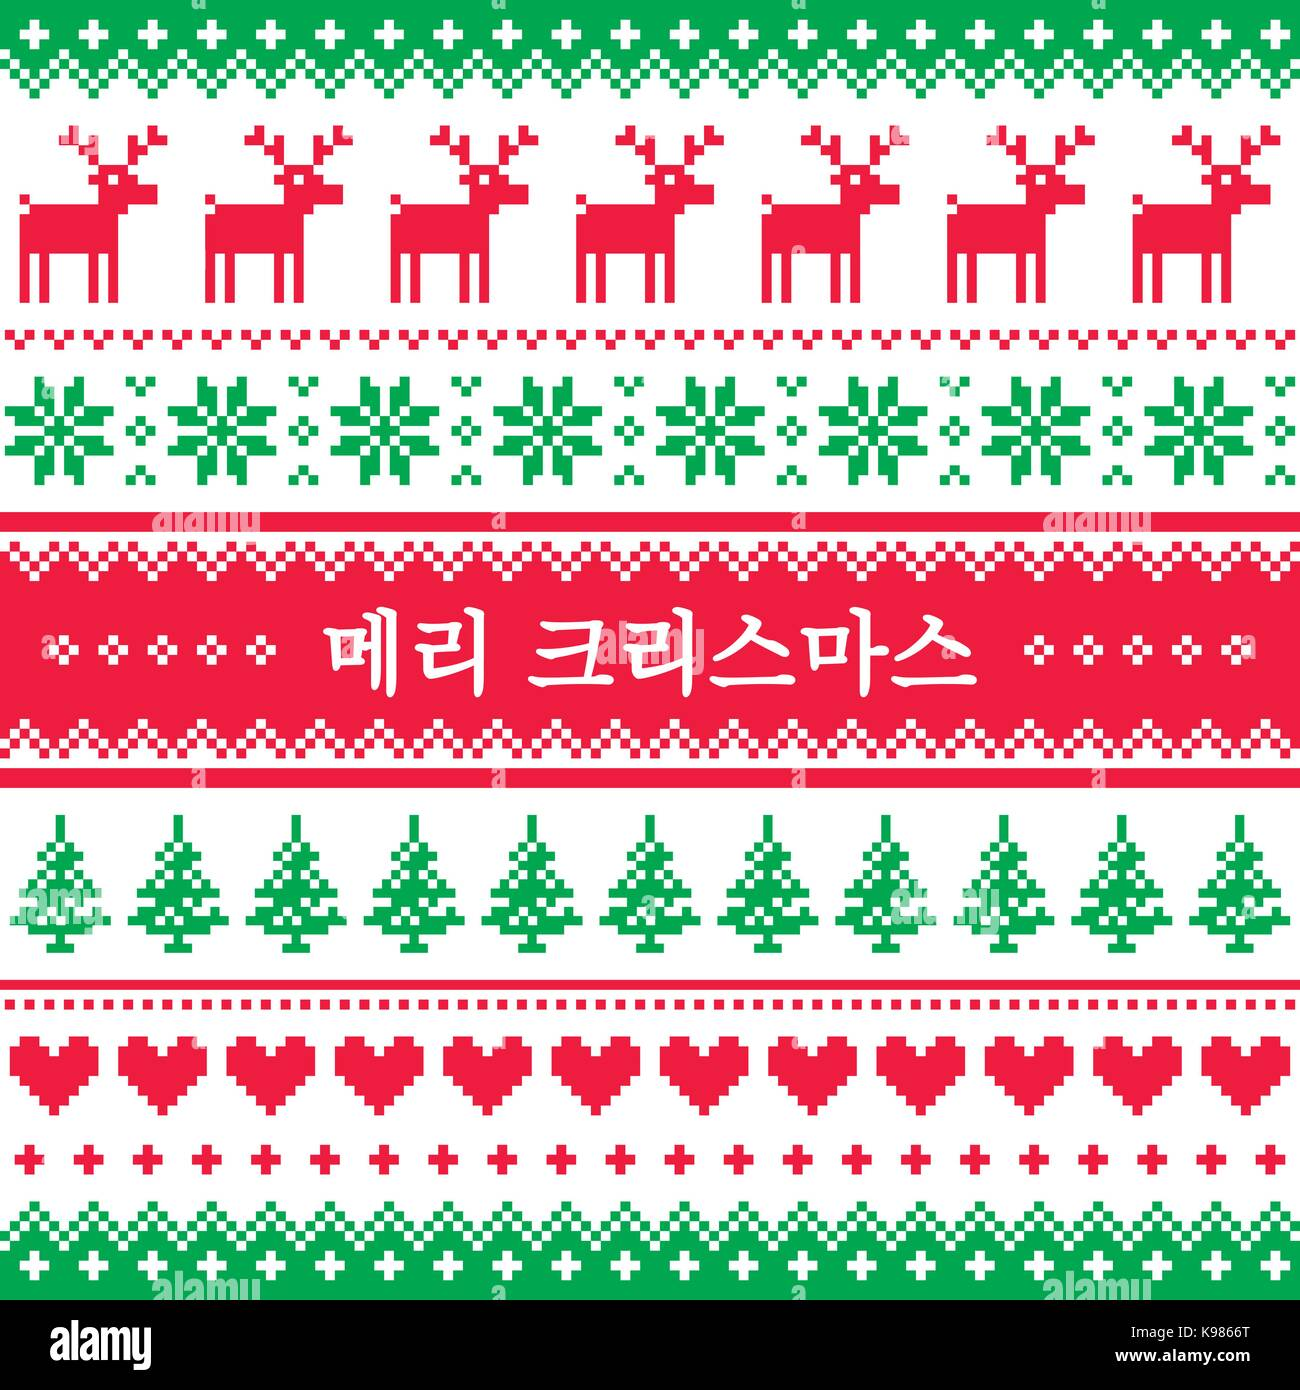 Merry christmas in korean greeting card nordic or scandinavian merry christmas in korean greeting card nordic or scandinavian style meri krismas m4hsunfo Images